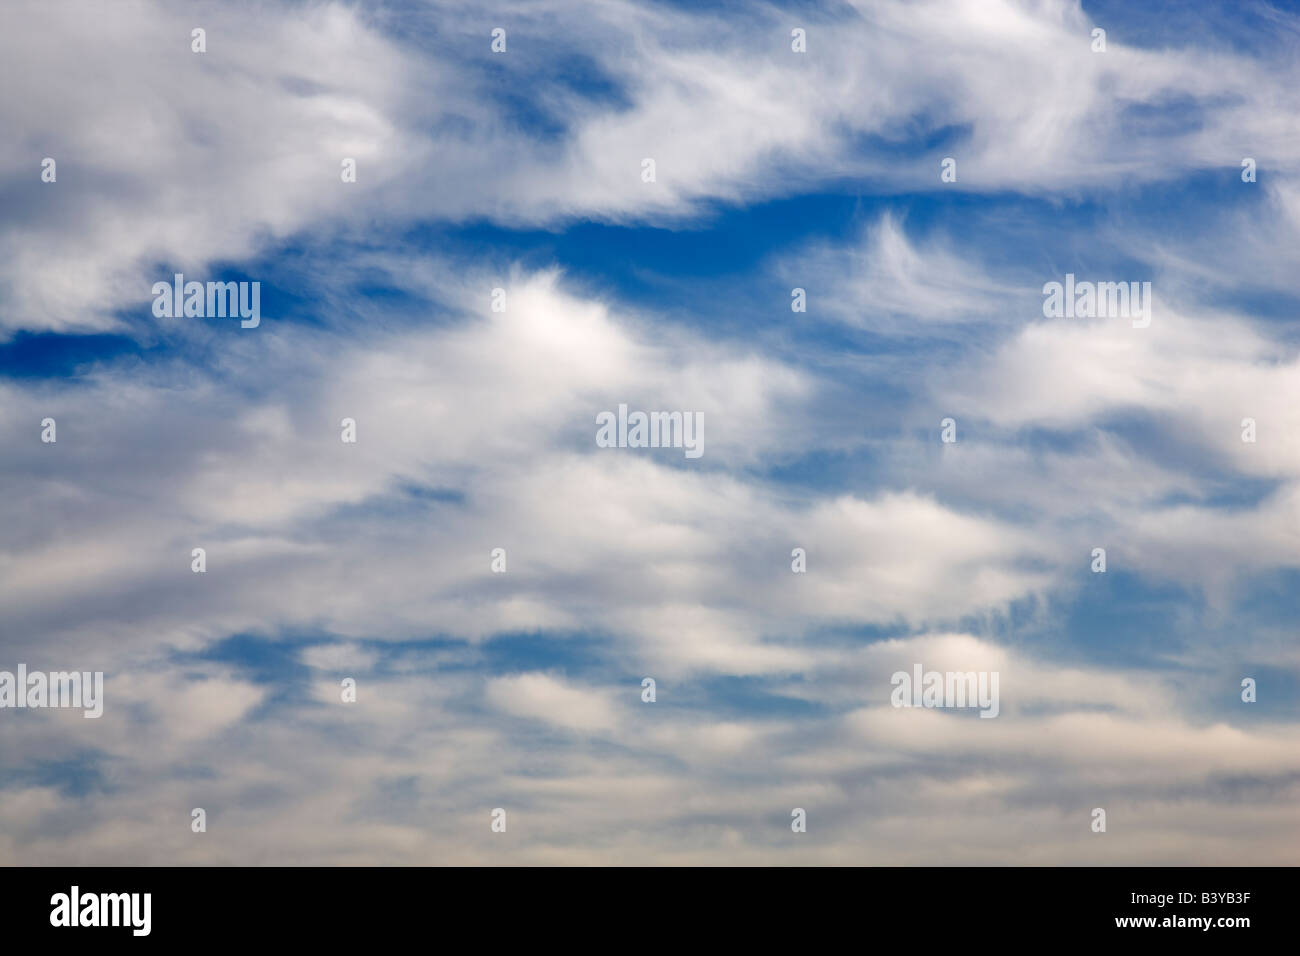 Cloud patterns. - Stock Image